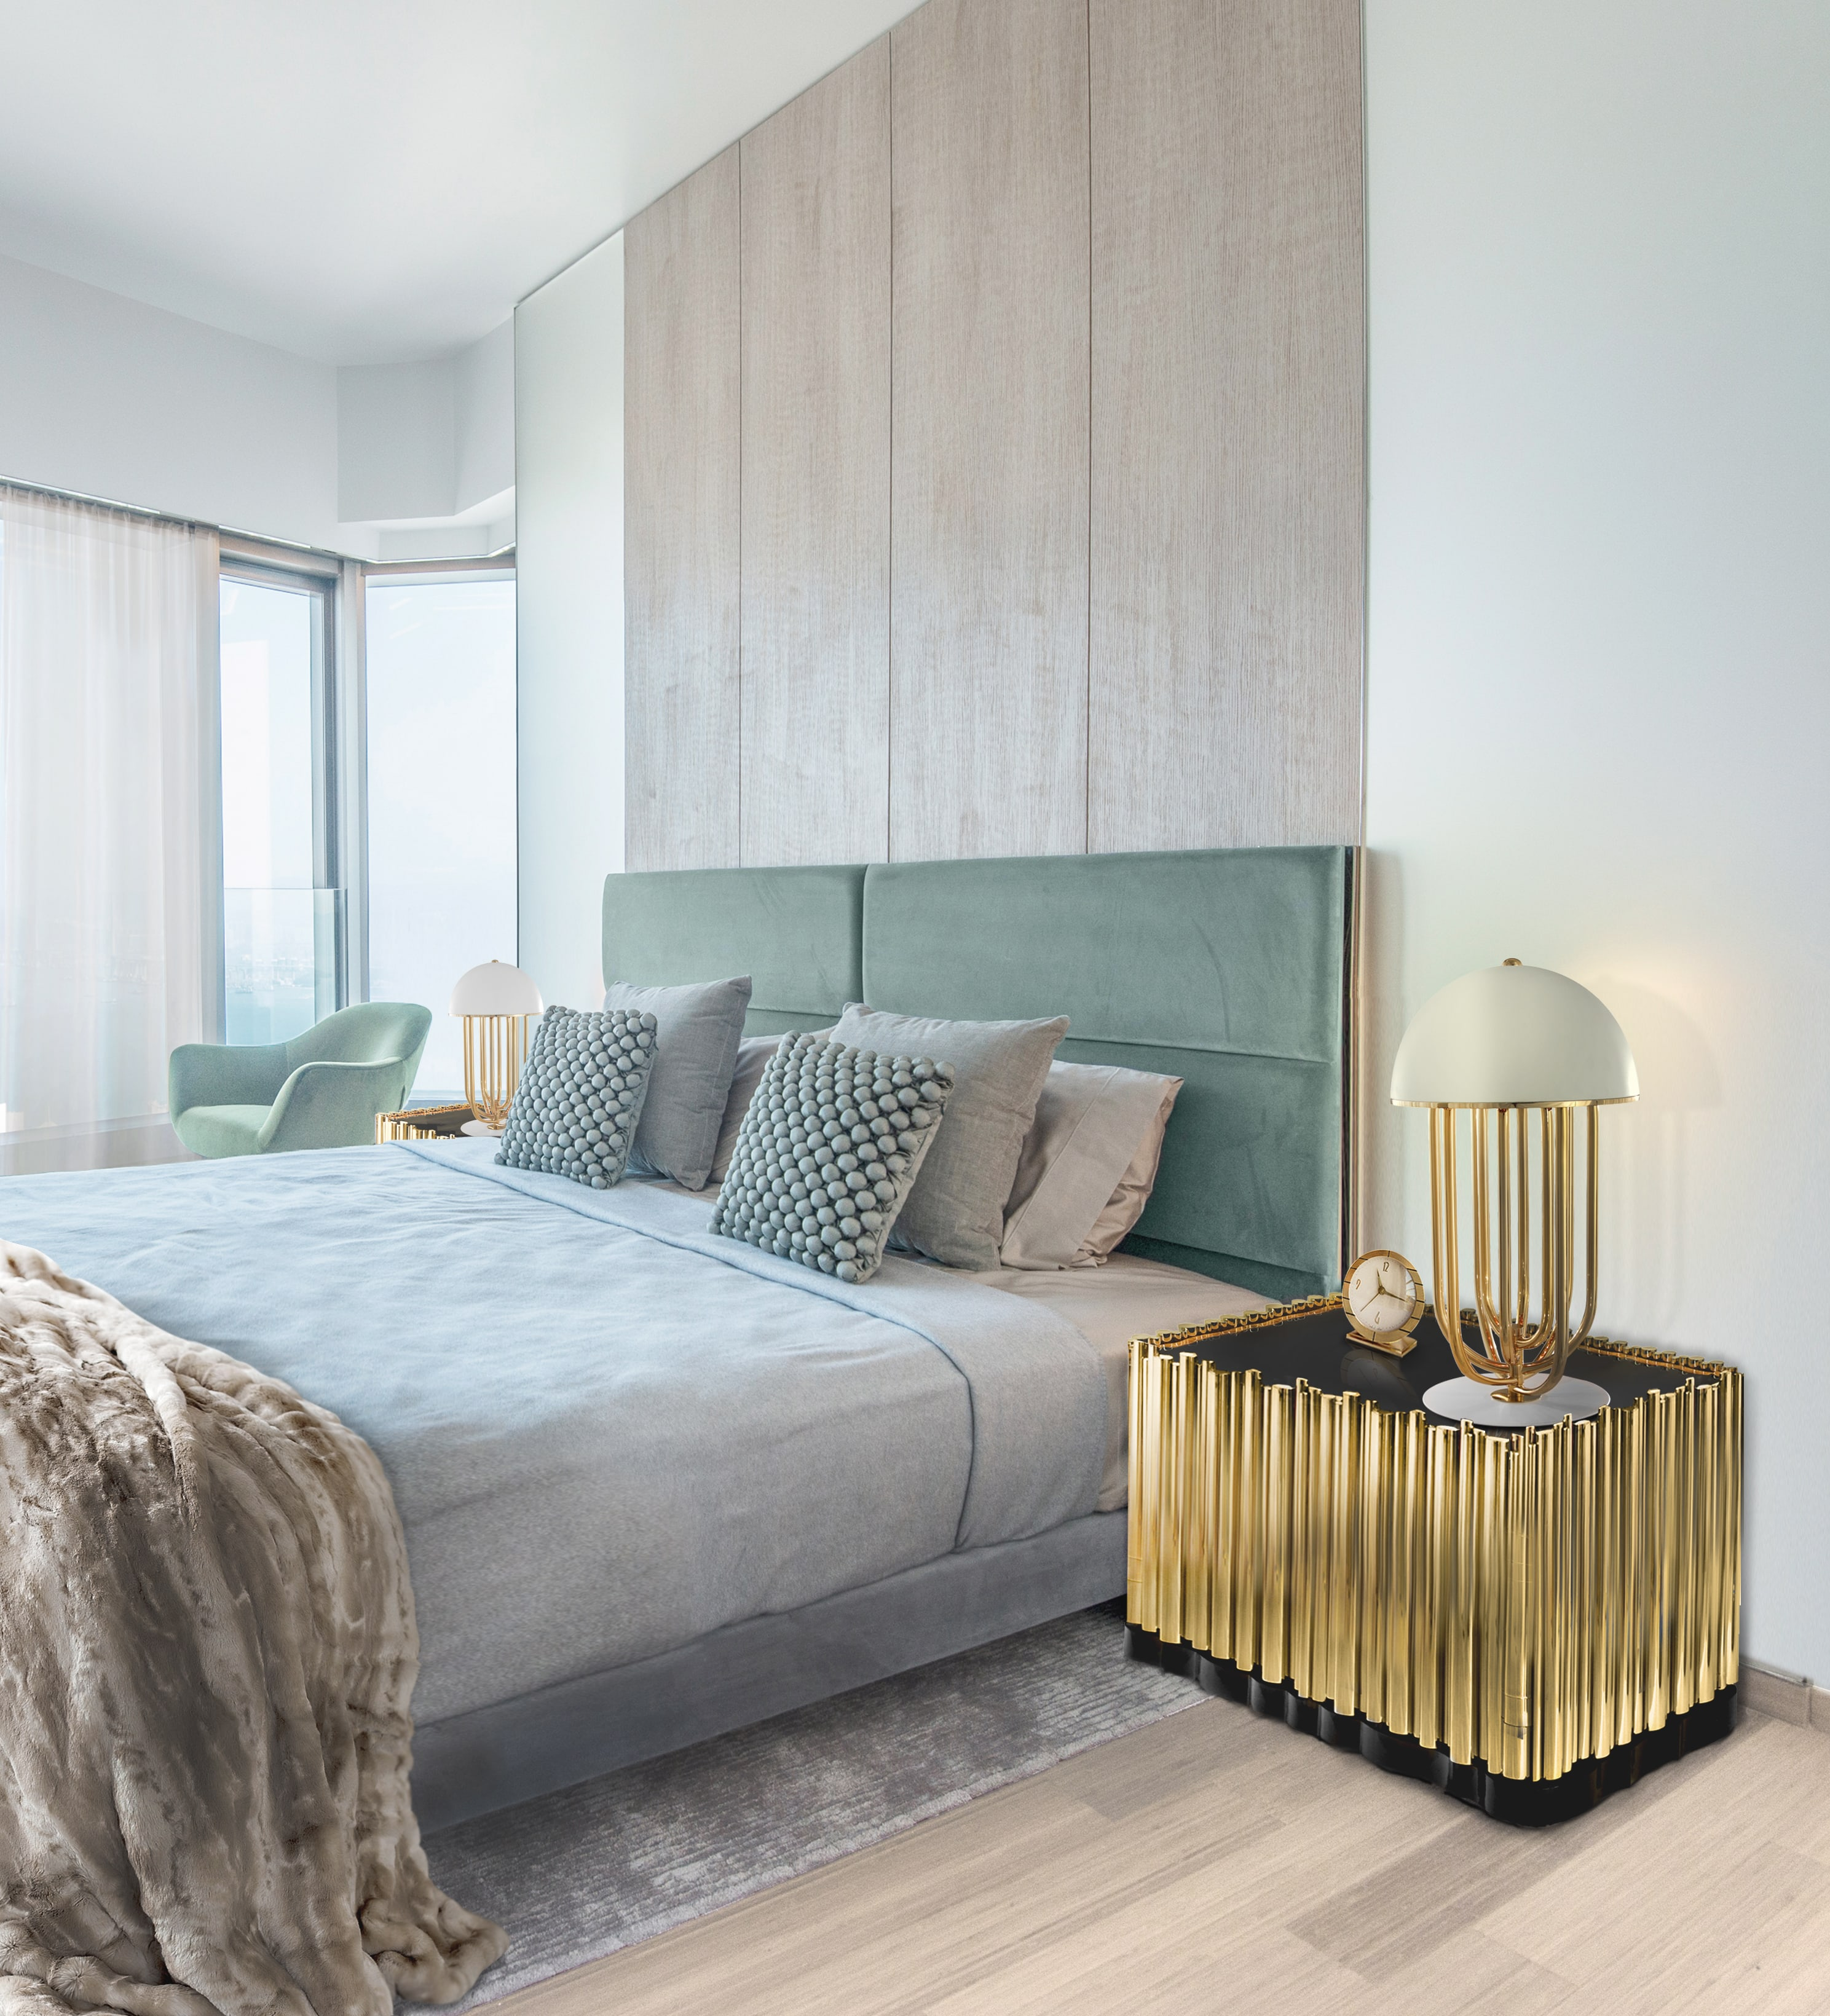 lighting designs A Delighted Home: Lighting Designs For Each Room Of Your House! A Delighted Home Lighting Designs For Each Room Of Your House 3